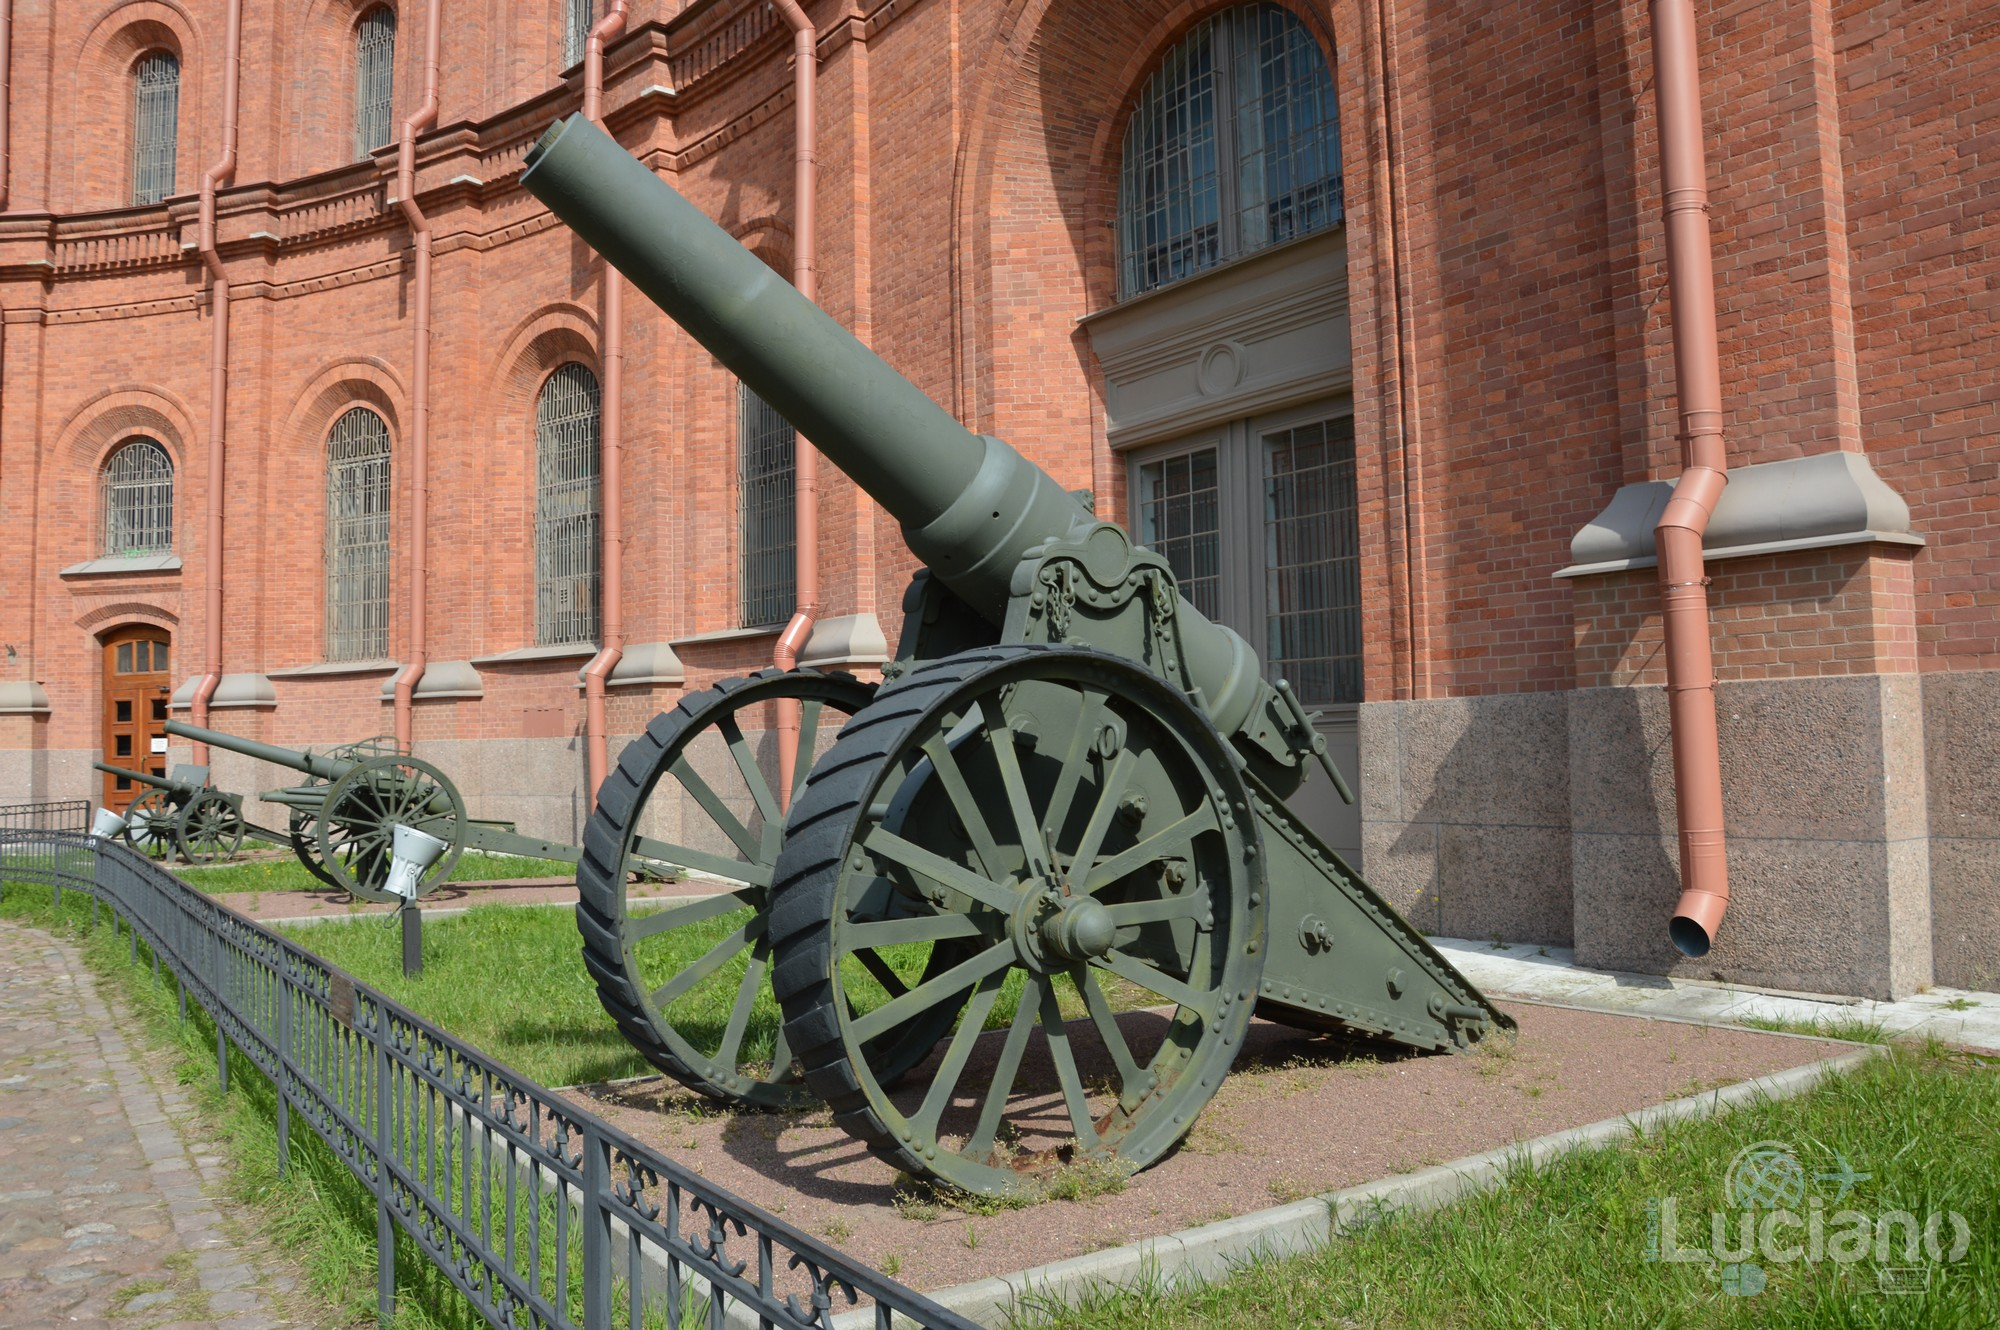 Military-Historical-Museum-of-Artillery-Engineer-and-Signal-Corps-St-Petersburg-Russia-Luciano-Blancato- (42)